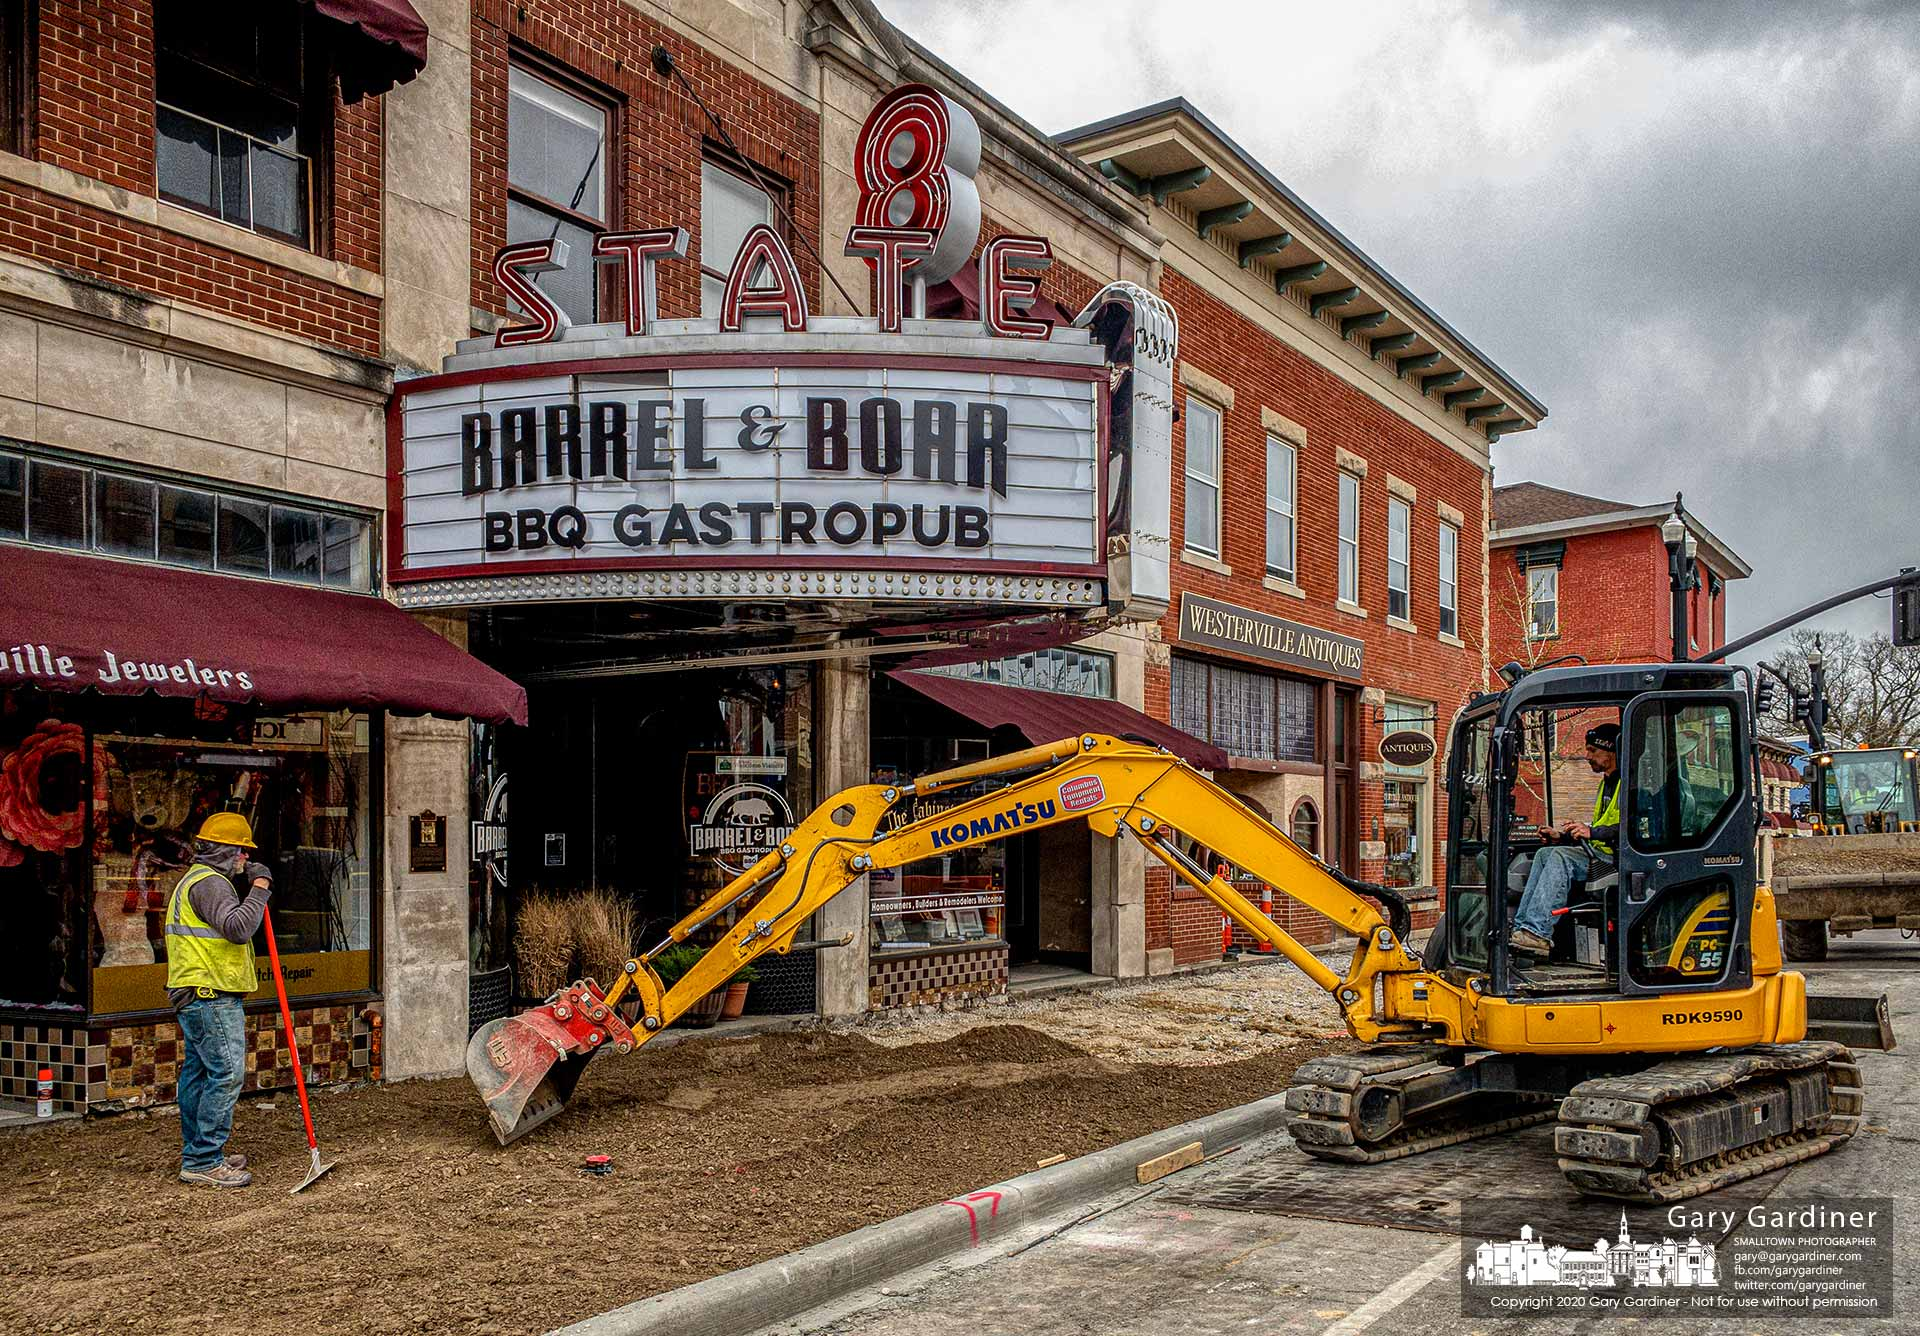 A construction worker spreads and levels dirt for a new sidewalk beneath the 8 State marquee as work on the Uptown Improvement Project accelerates with store closing and traffic less than normal because of coronavirus restrictions. My Final Photo for April 15, 2020.